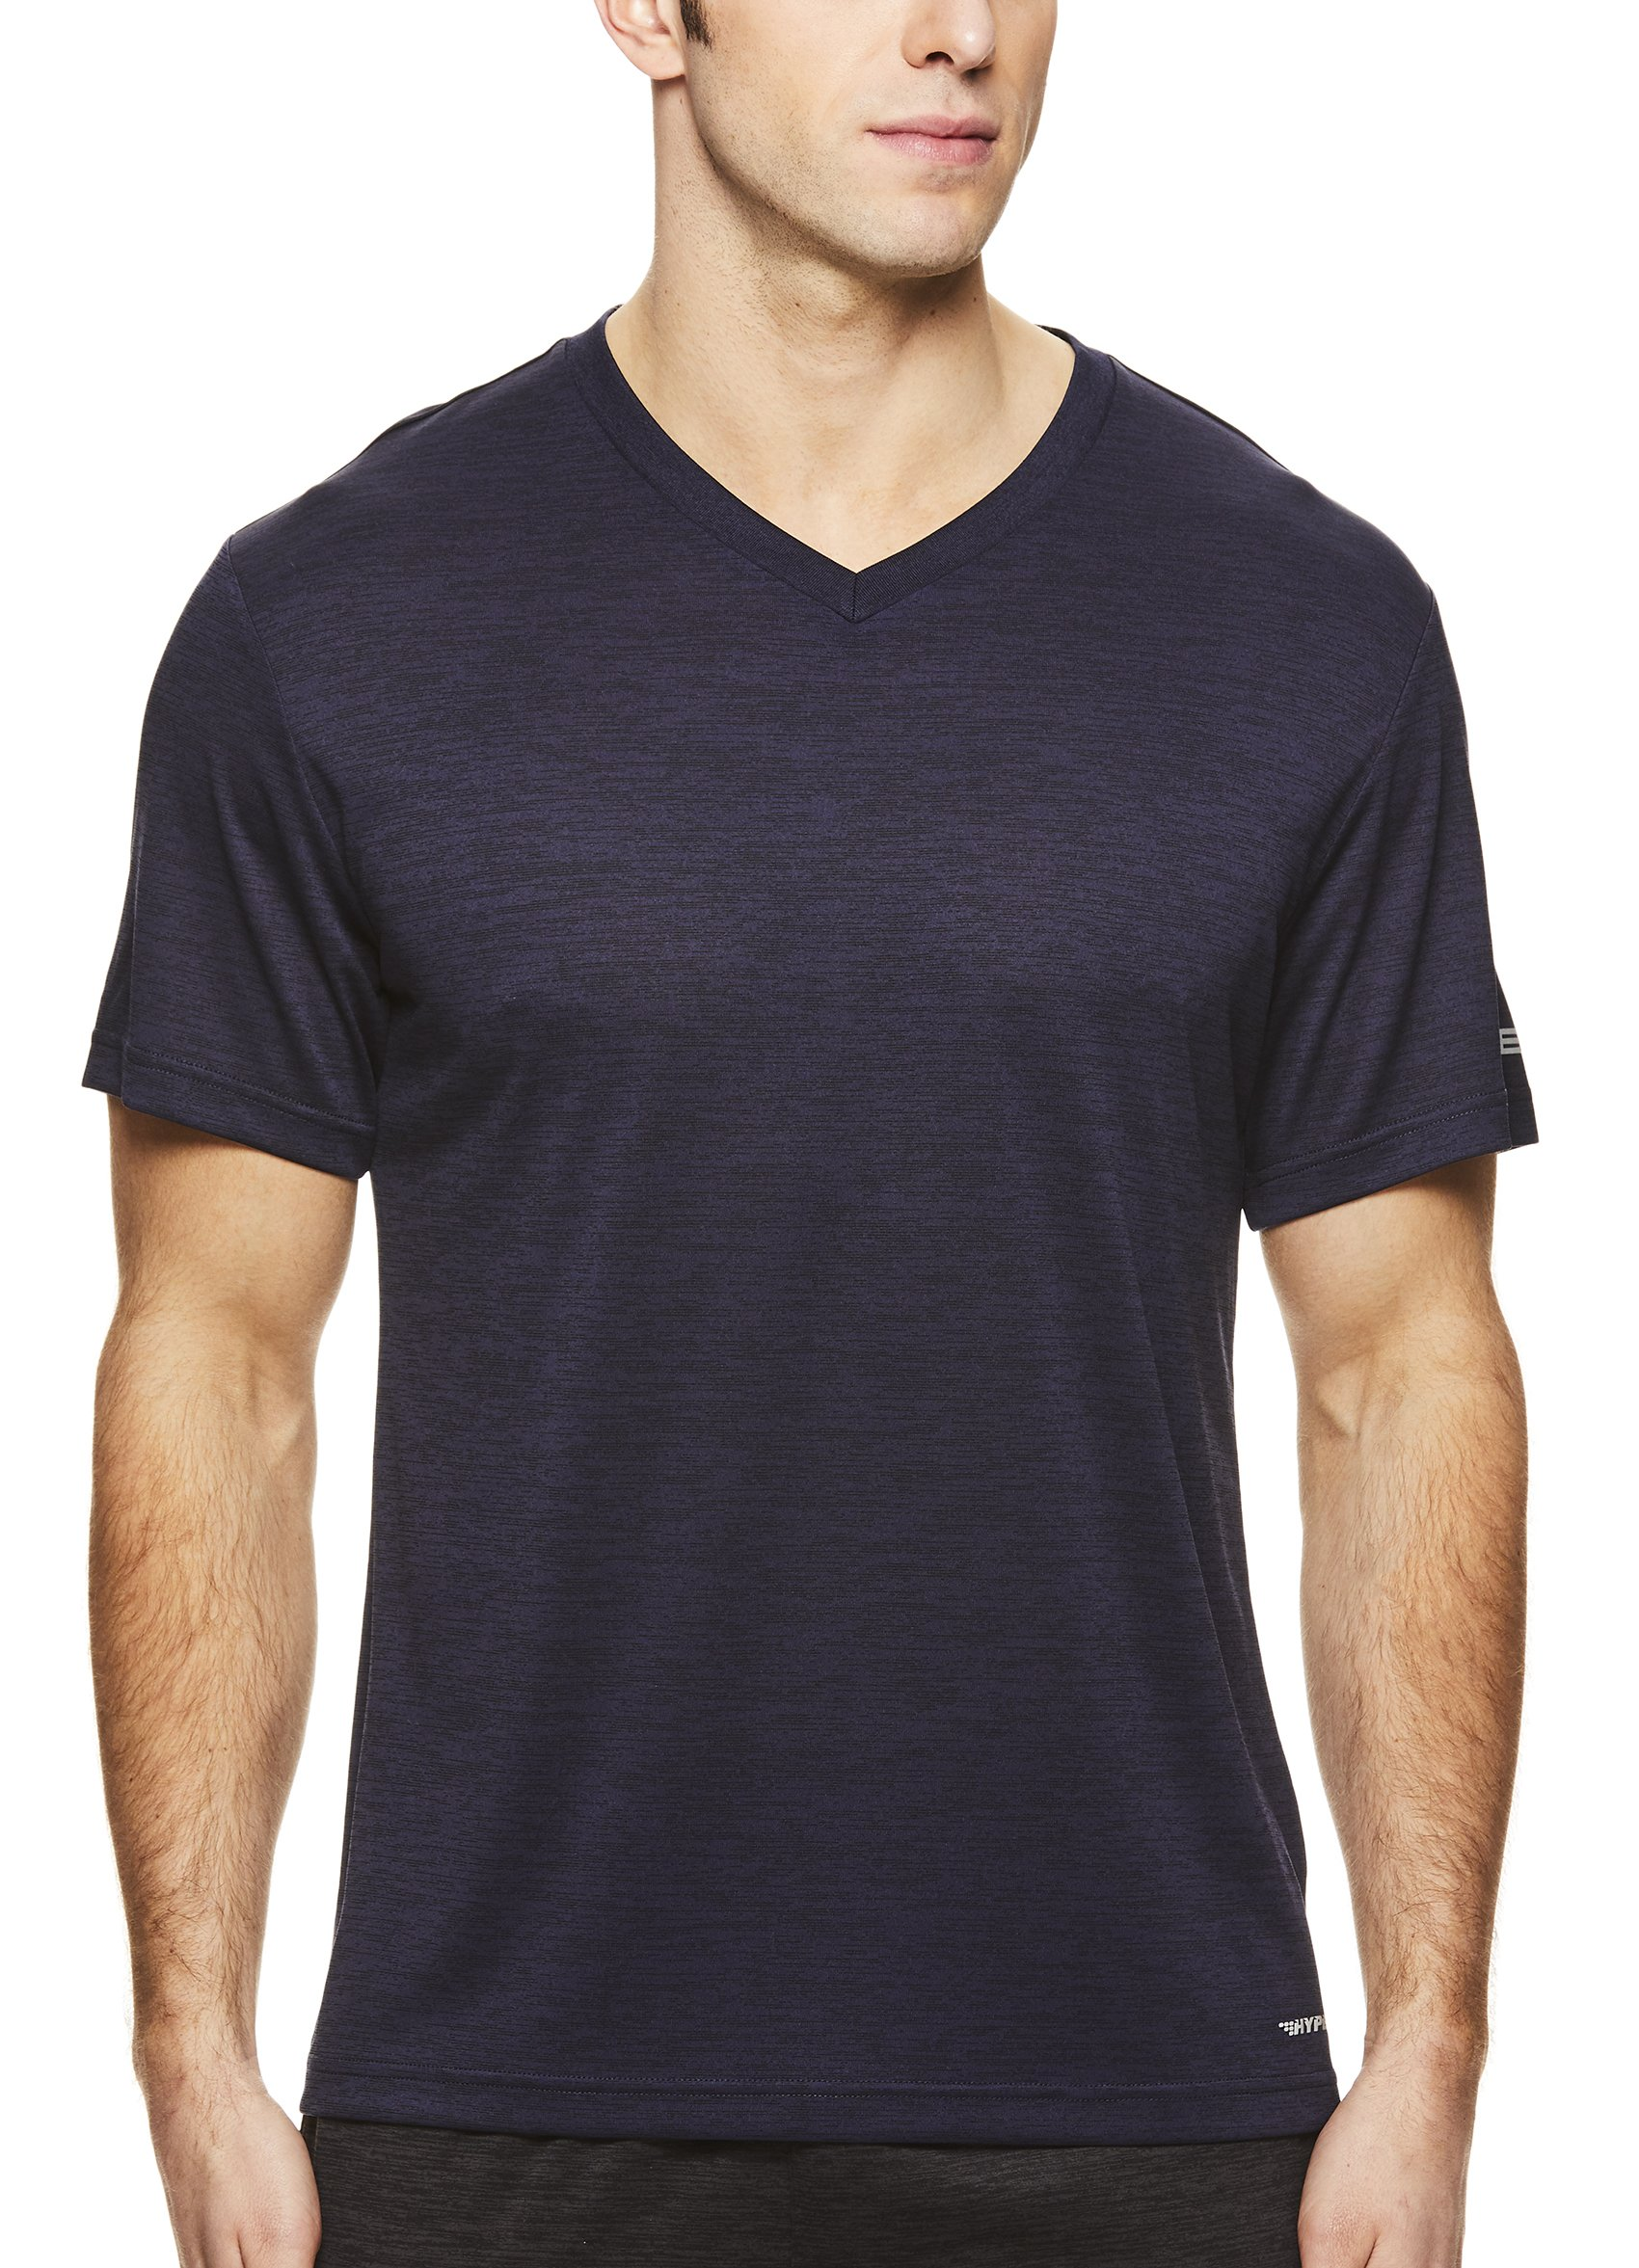 HEAD Men's V Neck Gym Training & Workout T-Shirt - Short Sleeve Activewear Top - Flash Navy Heather Blue, Small